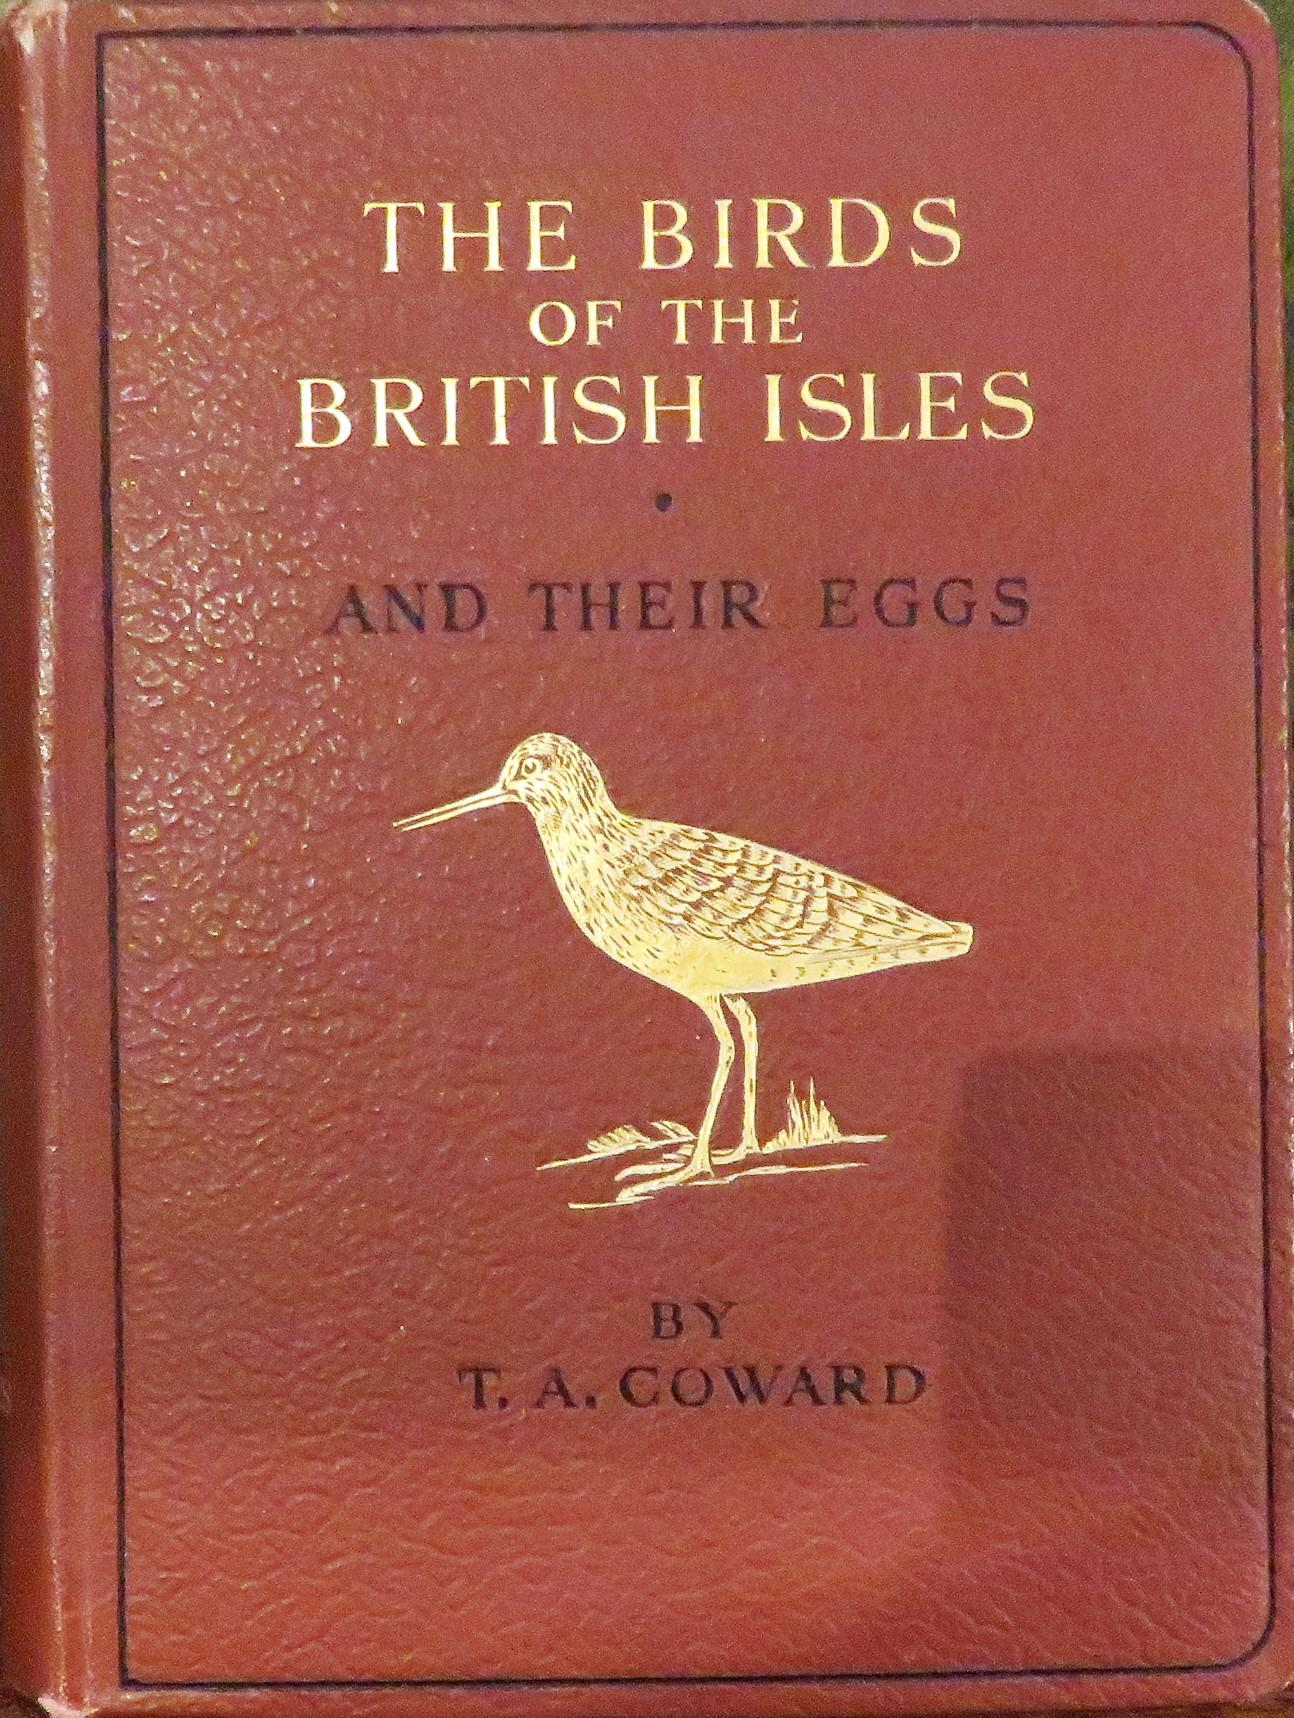 The Birds of the British Isles and Their Eggs